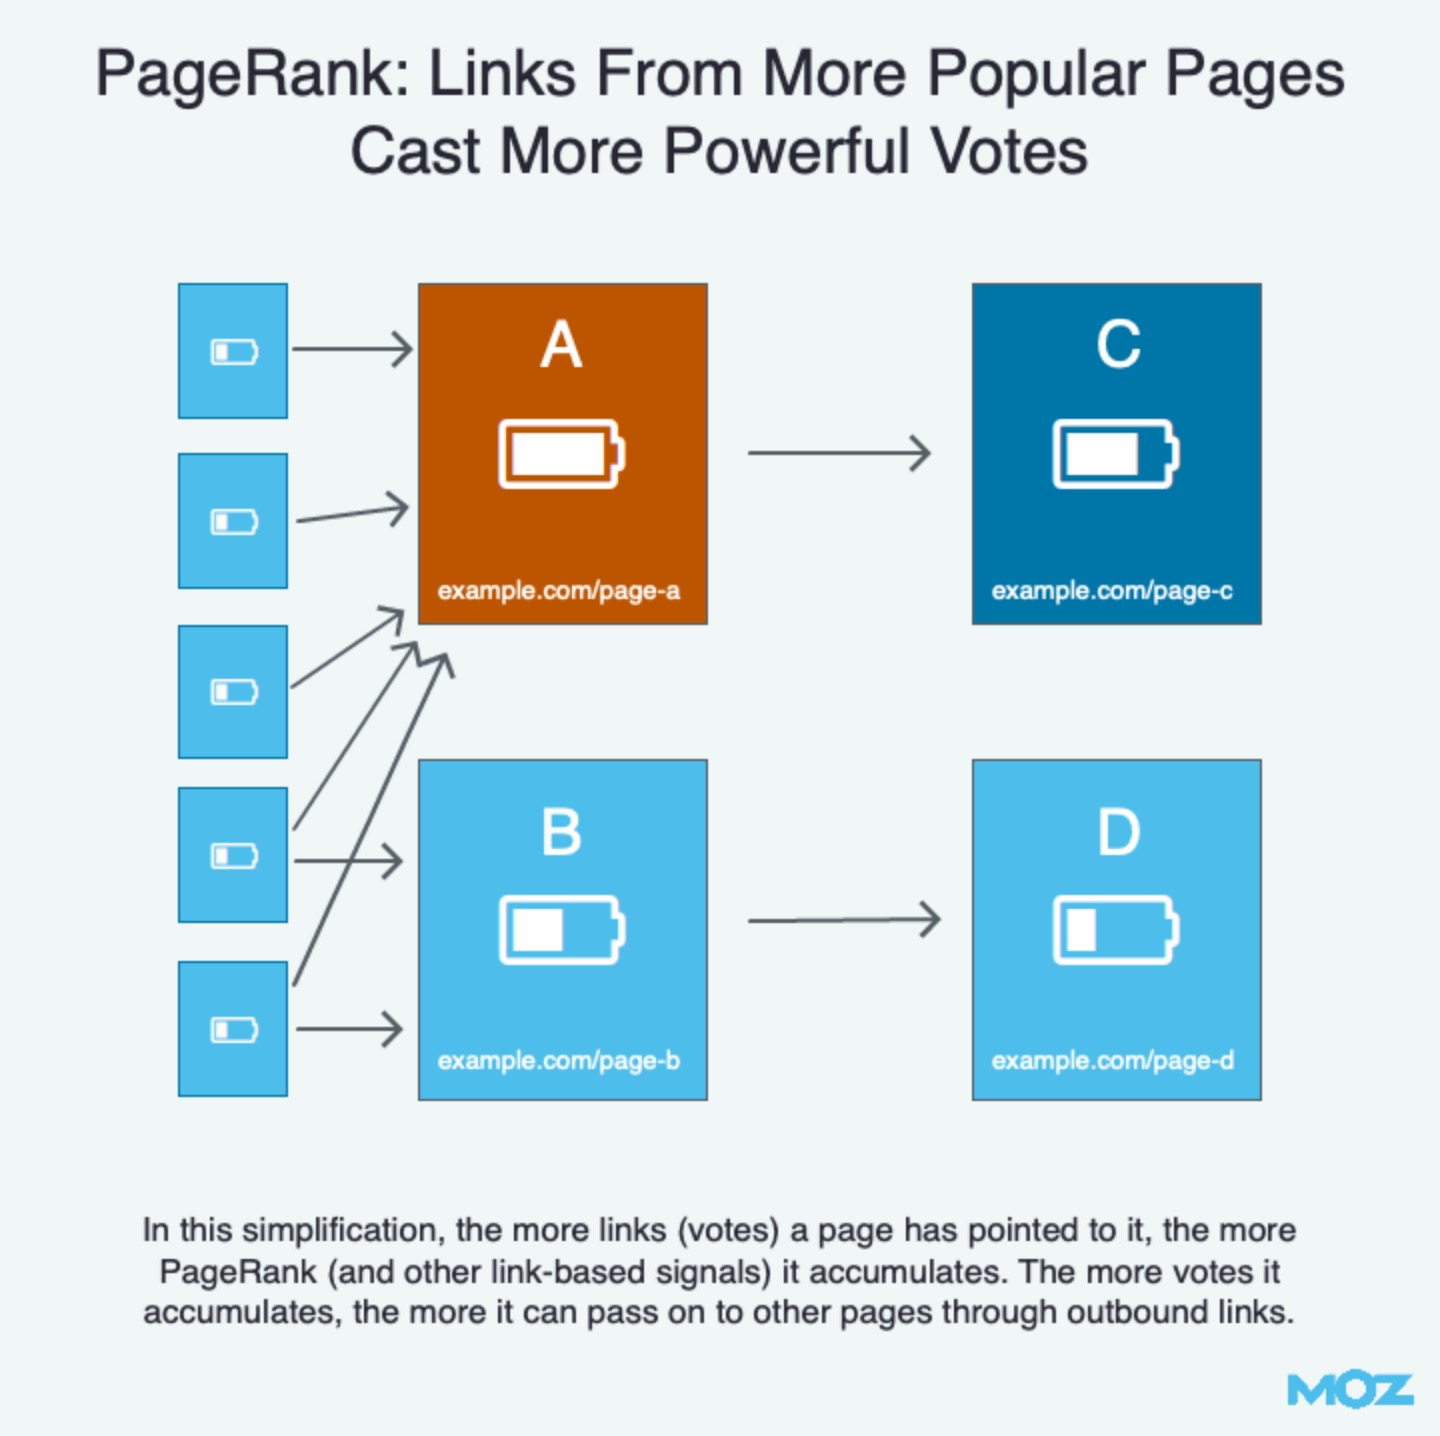 1-pagerank-47972 from moz